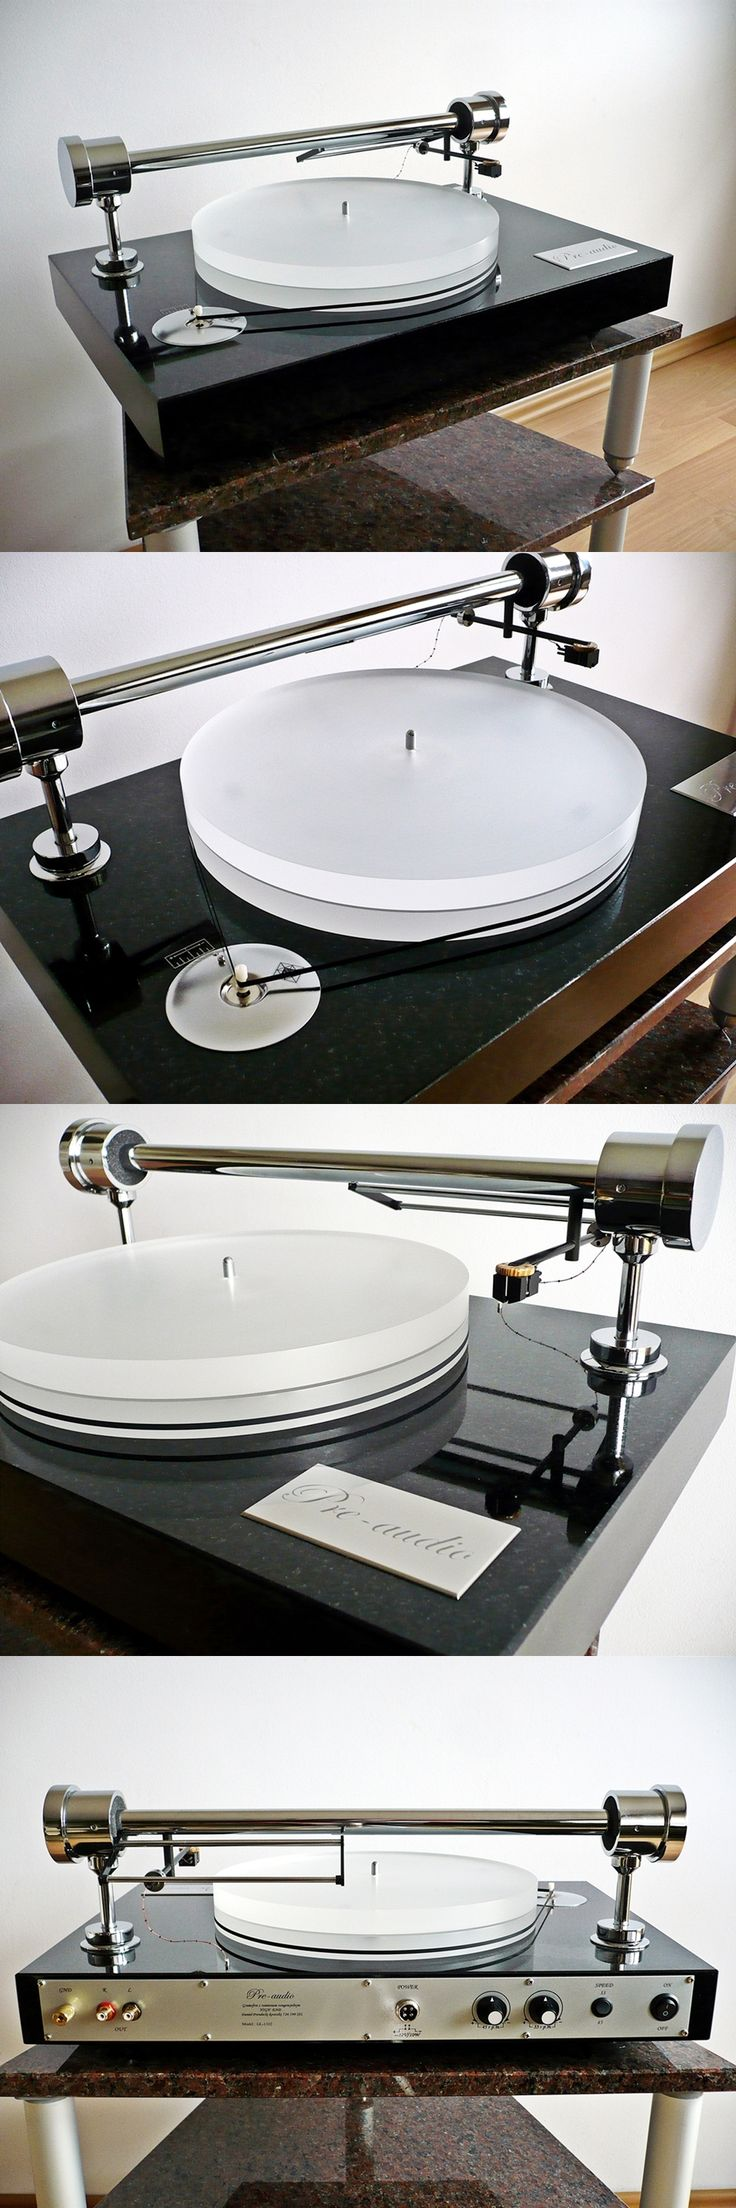 Turntable (tangential model with grate quality of sound) made by pre-audio.com